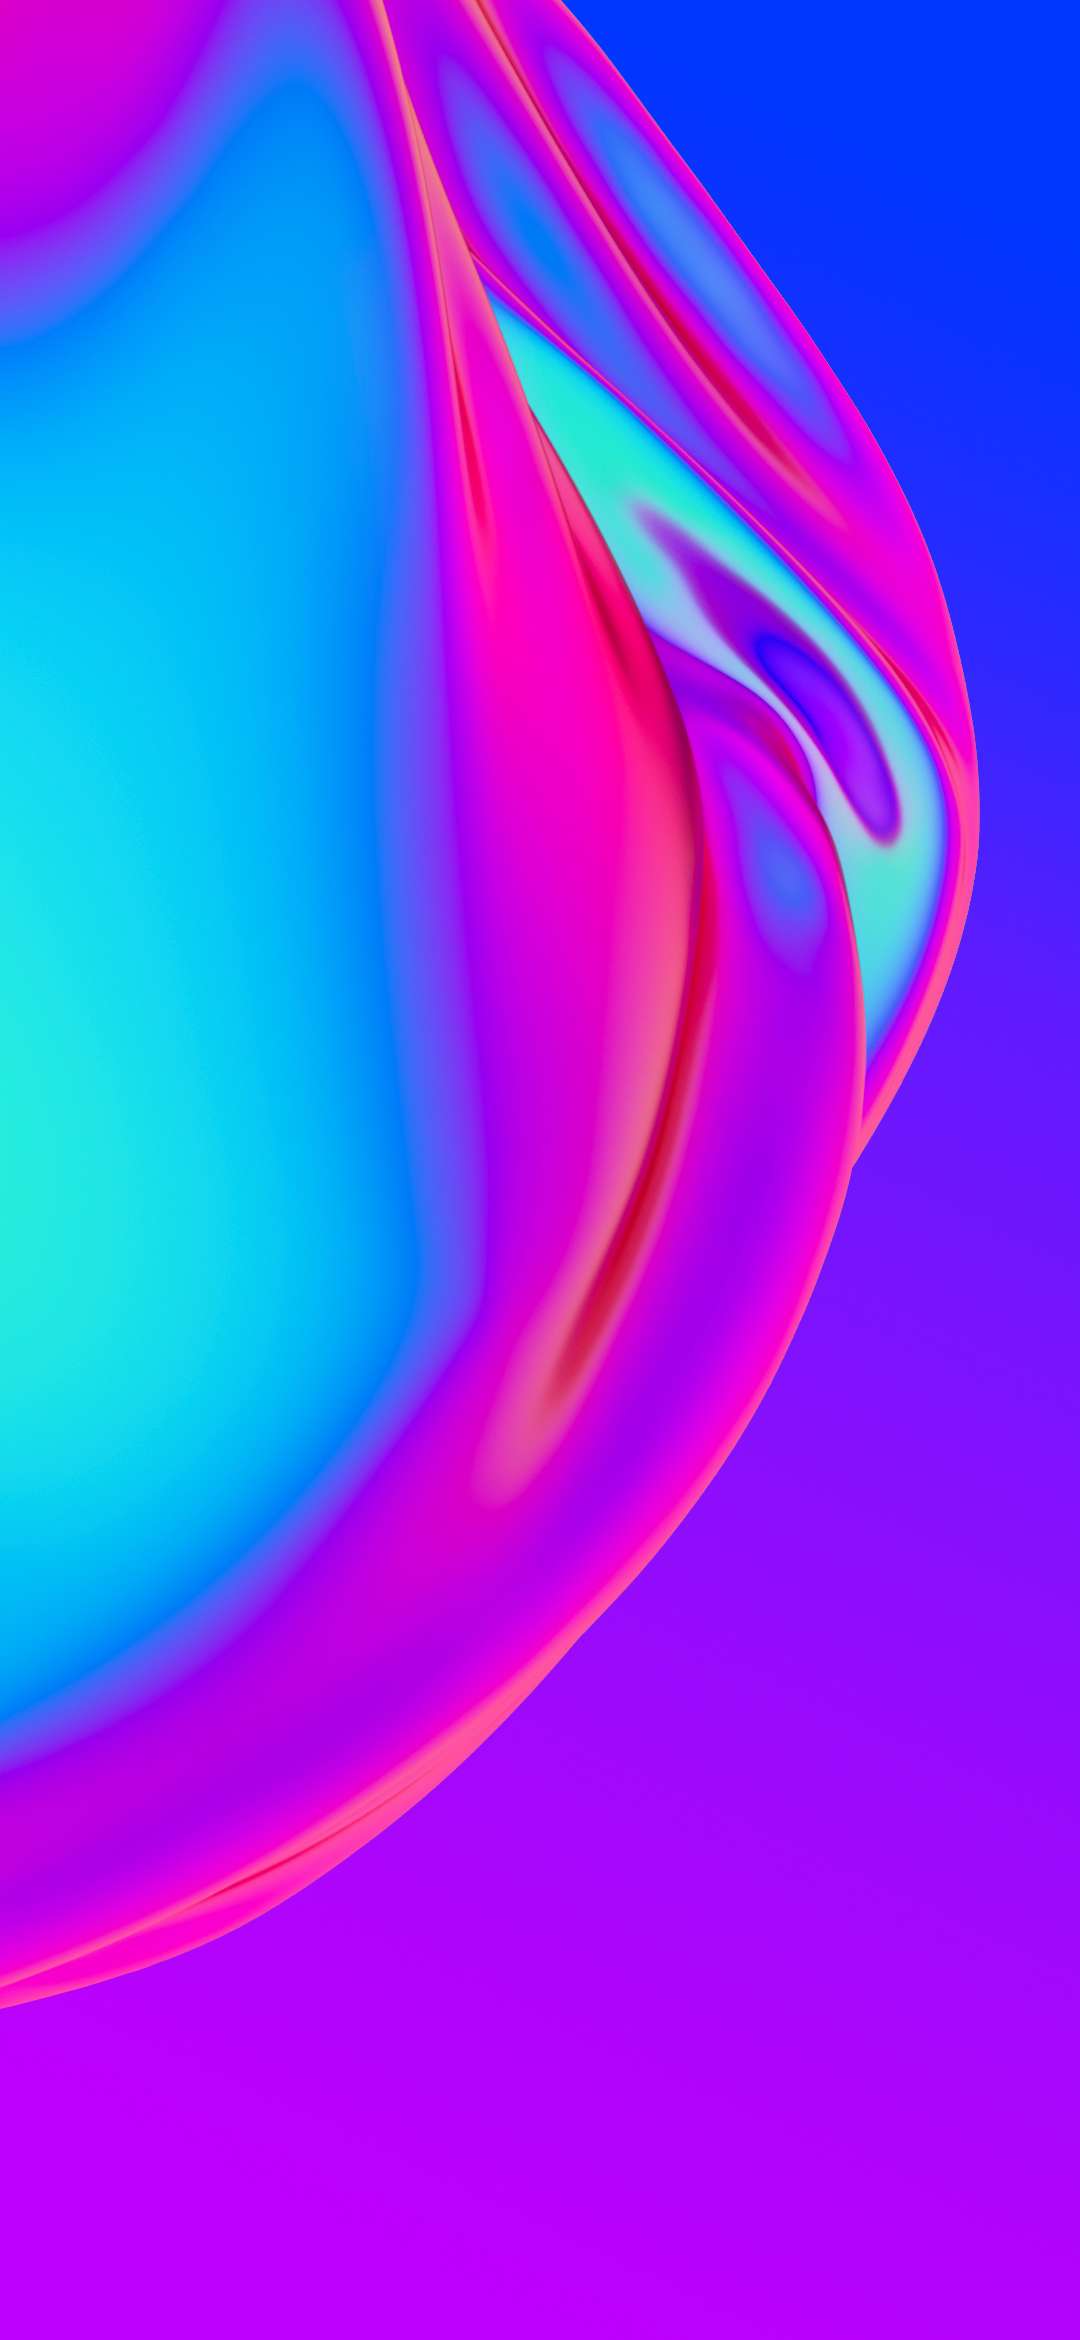 Download Oppo F11 Pro Wallpapers Full Hd Resolution Official In 2020 Abstract Iphone Wallpaper Hd Phone Wallpapers Android Phone Wallpaper